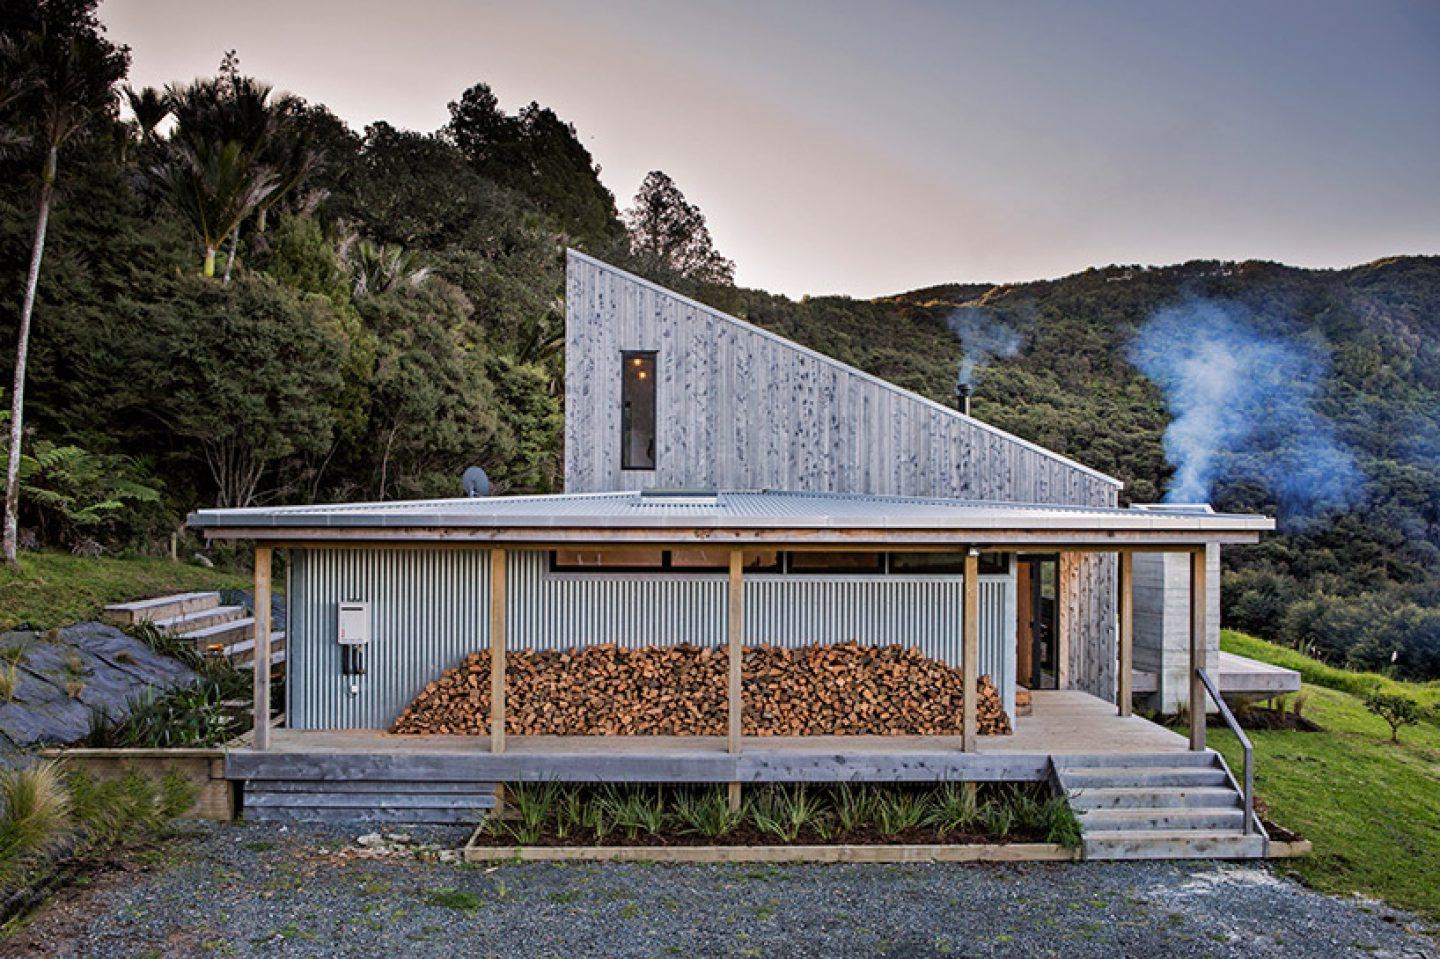 david-maurice-LTD-architectural-back-country-house-puhoi-new-zealand-ignant_03